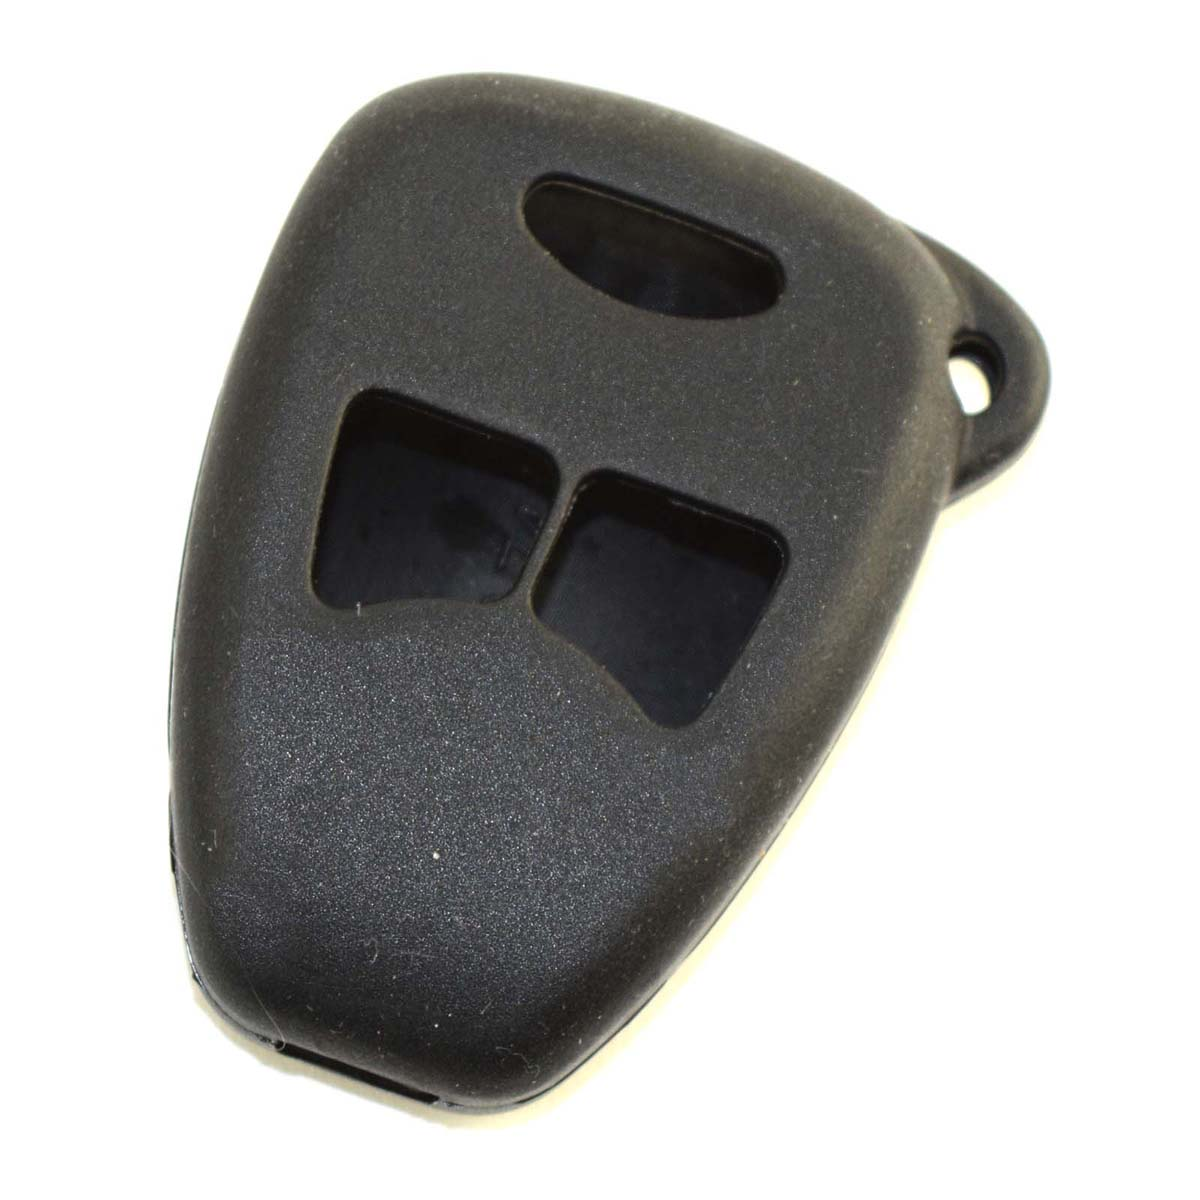 Dodge Grand Caravan Silicone Rubber Remote Cover on 2007 Dodge Grand Caravan